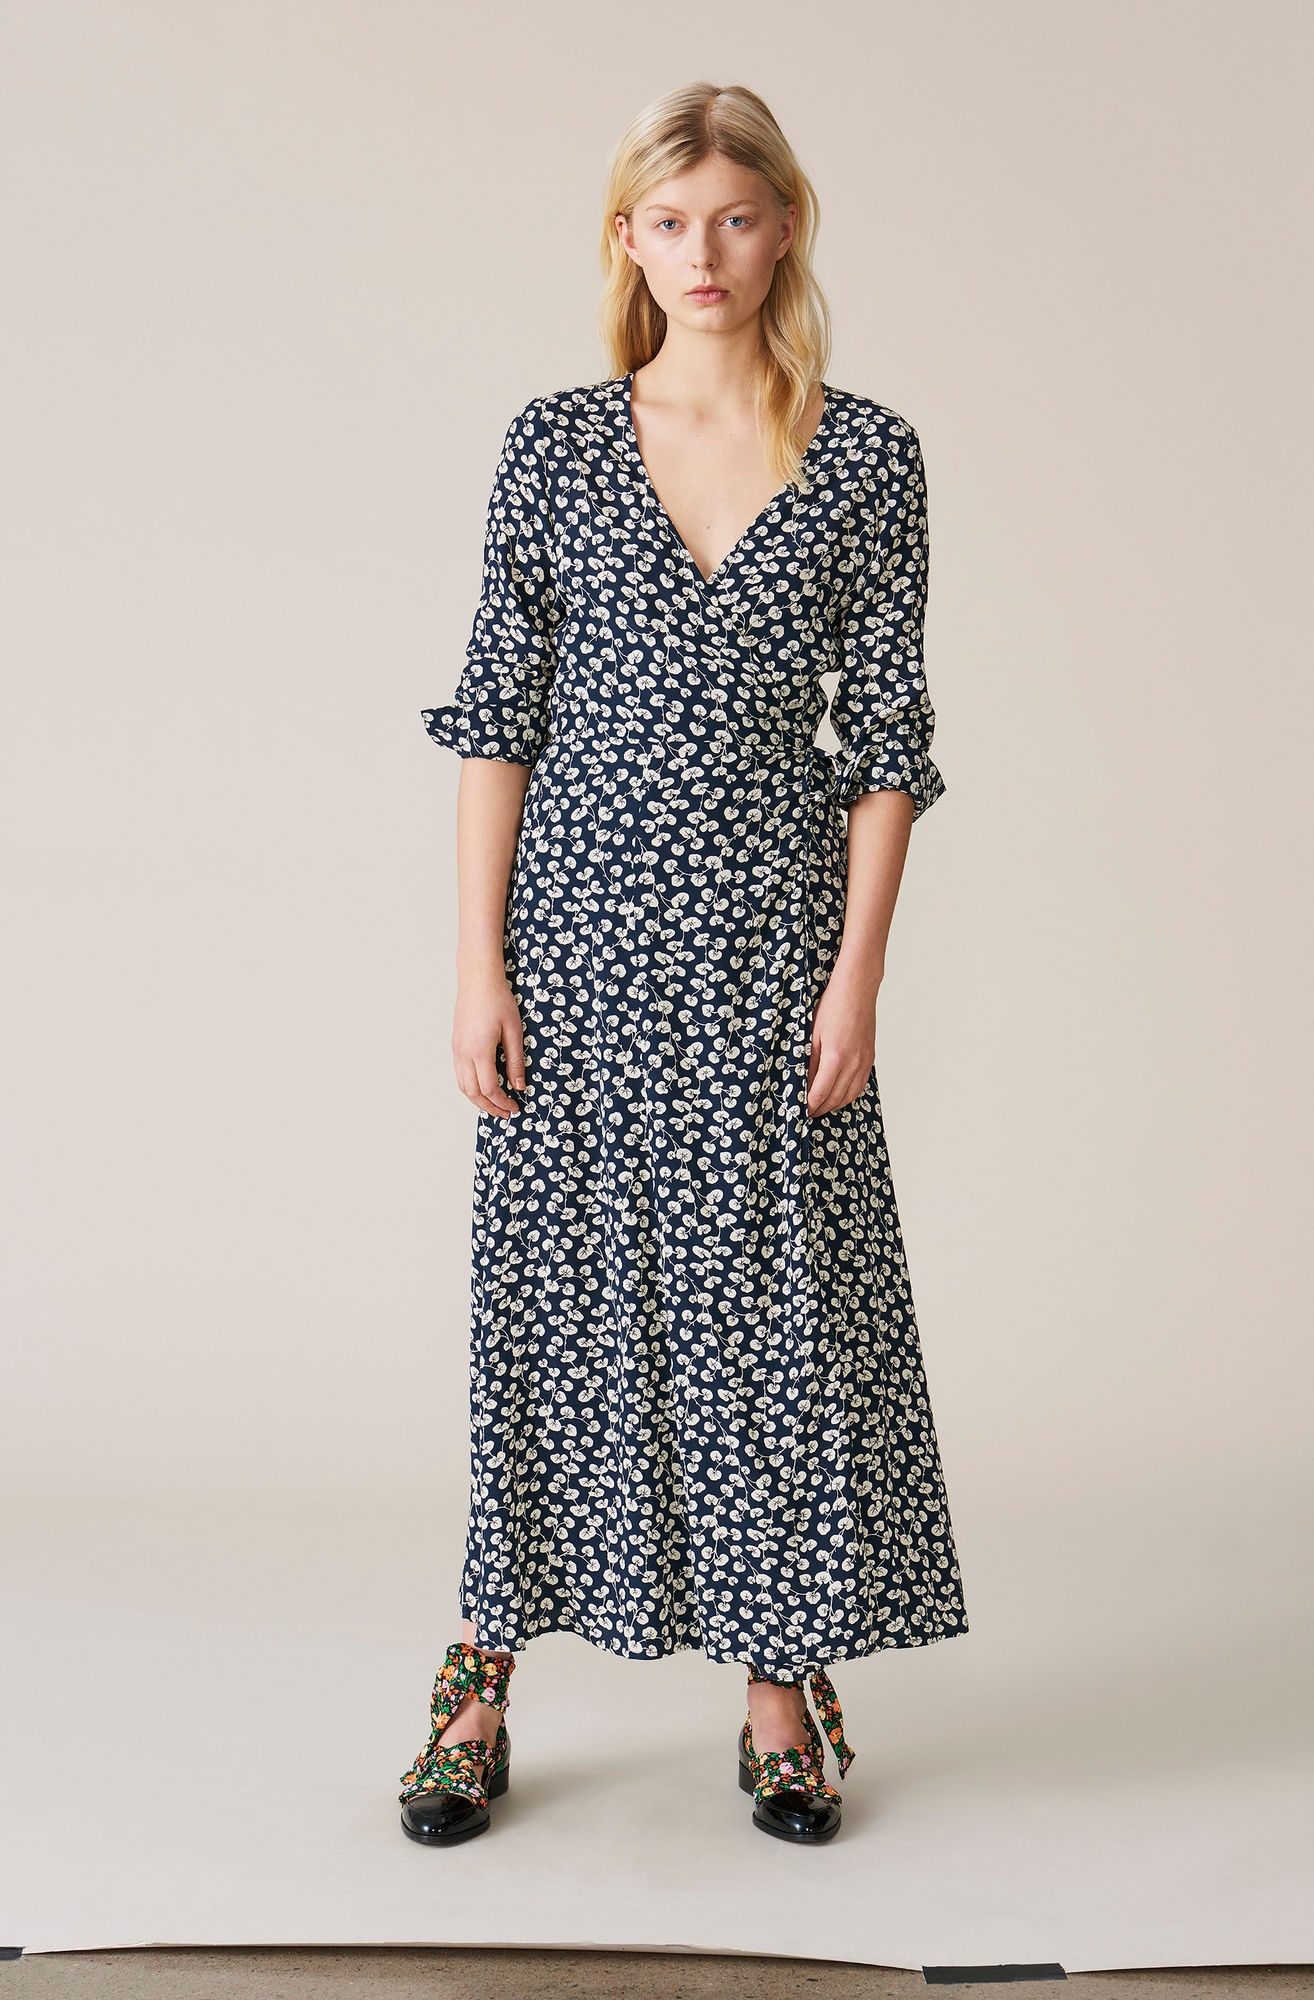 los angeles special section buying cheap Roseburg Crepe Wrap Dress